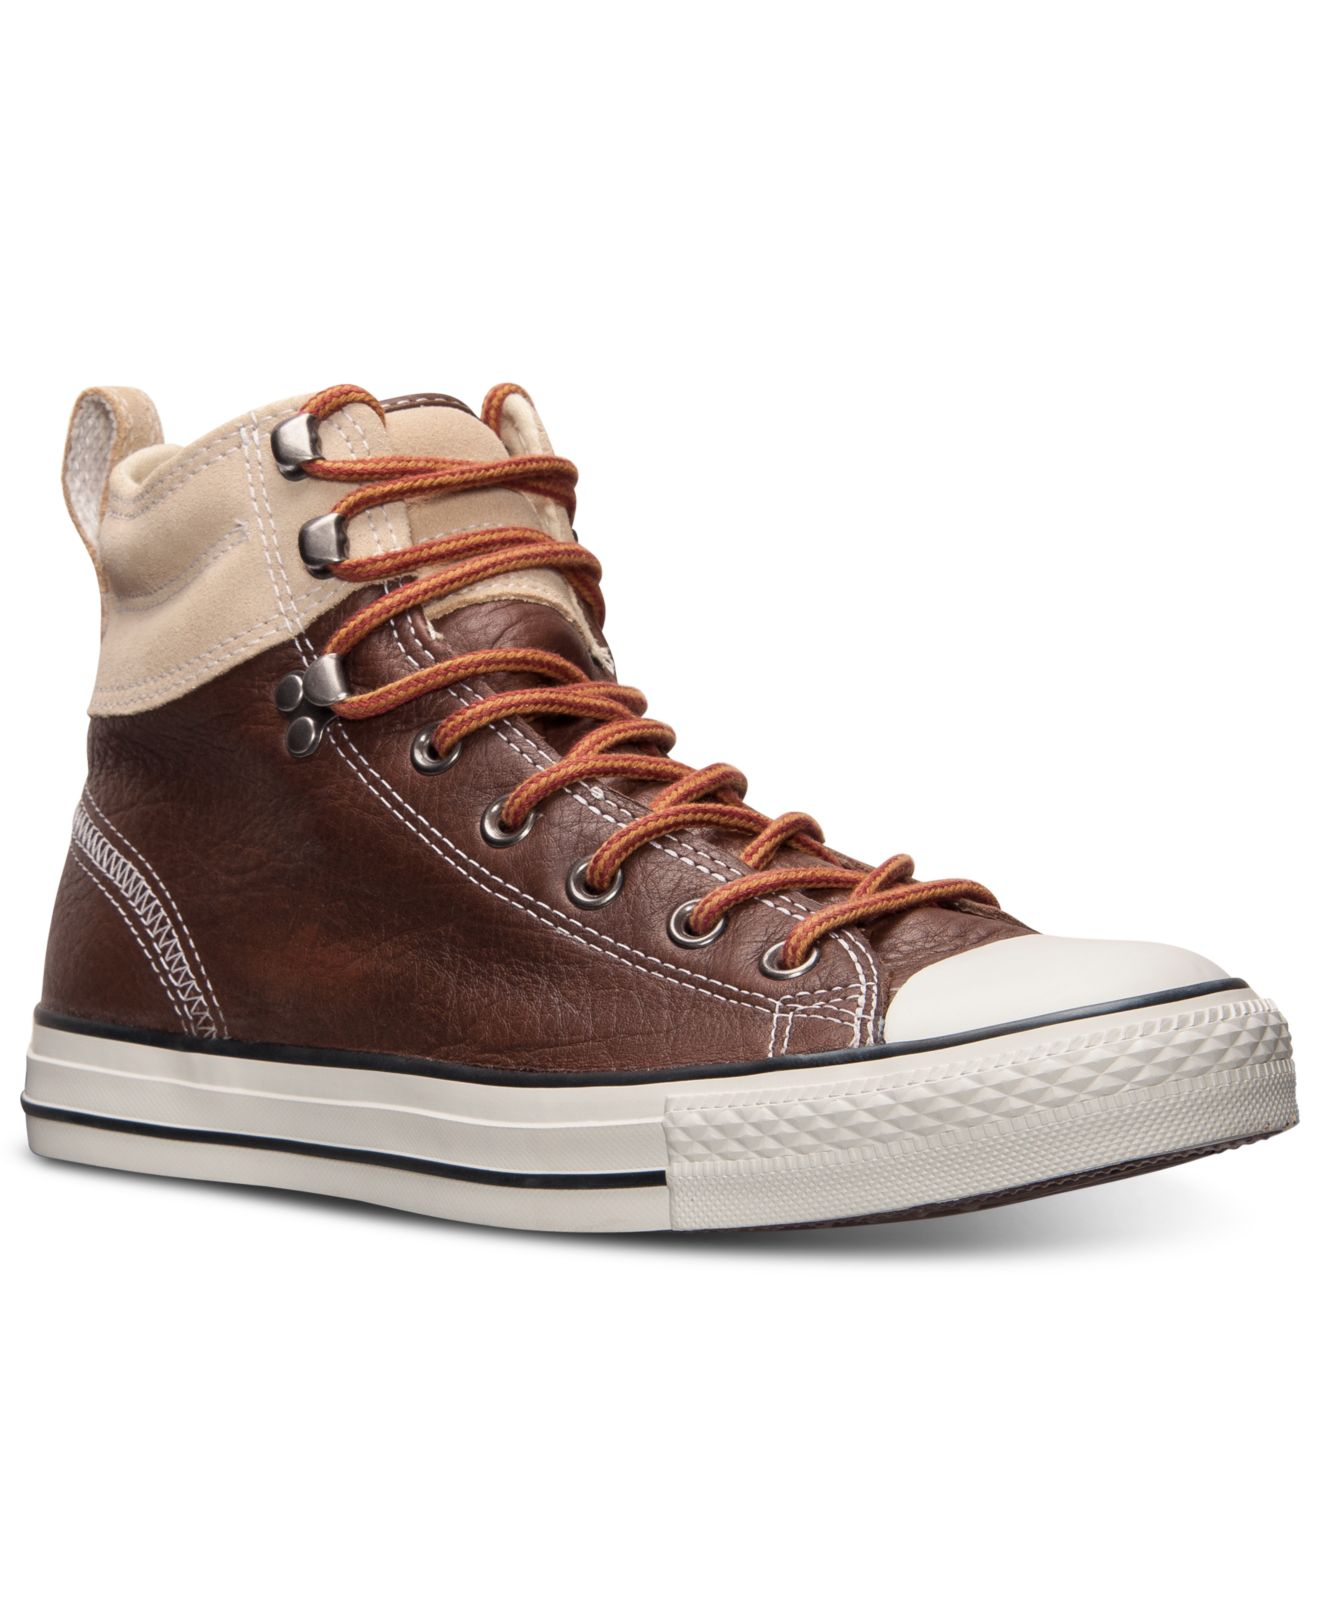 1074050b876b Lyst - Converse Men s Chuck Taylor All Star Hiker 2 Sneakers From ...